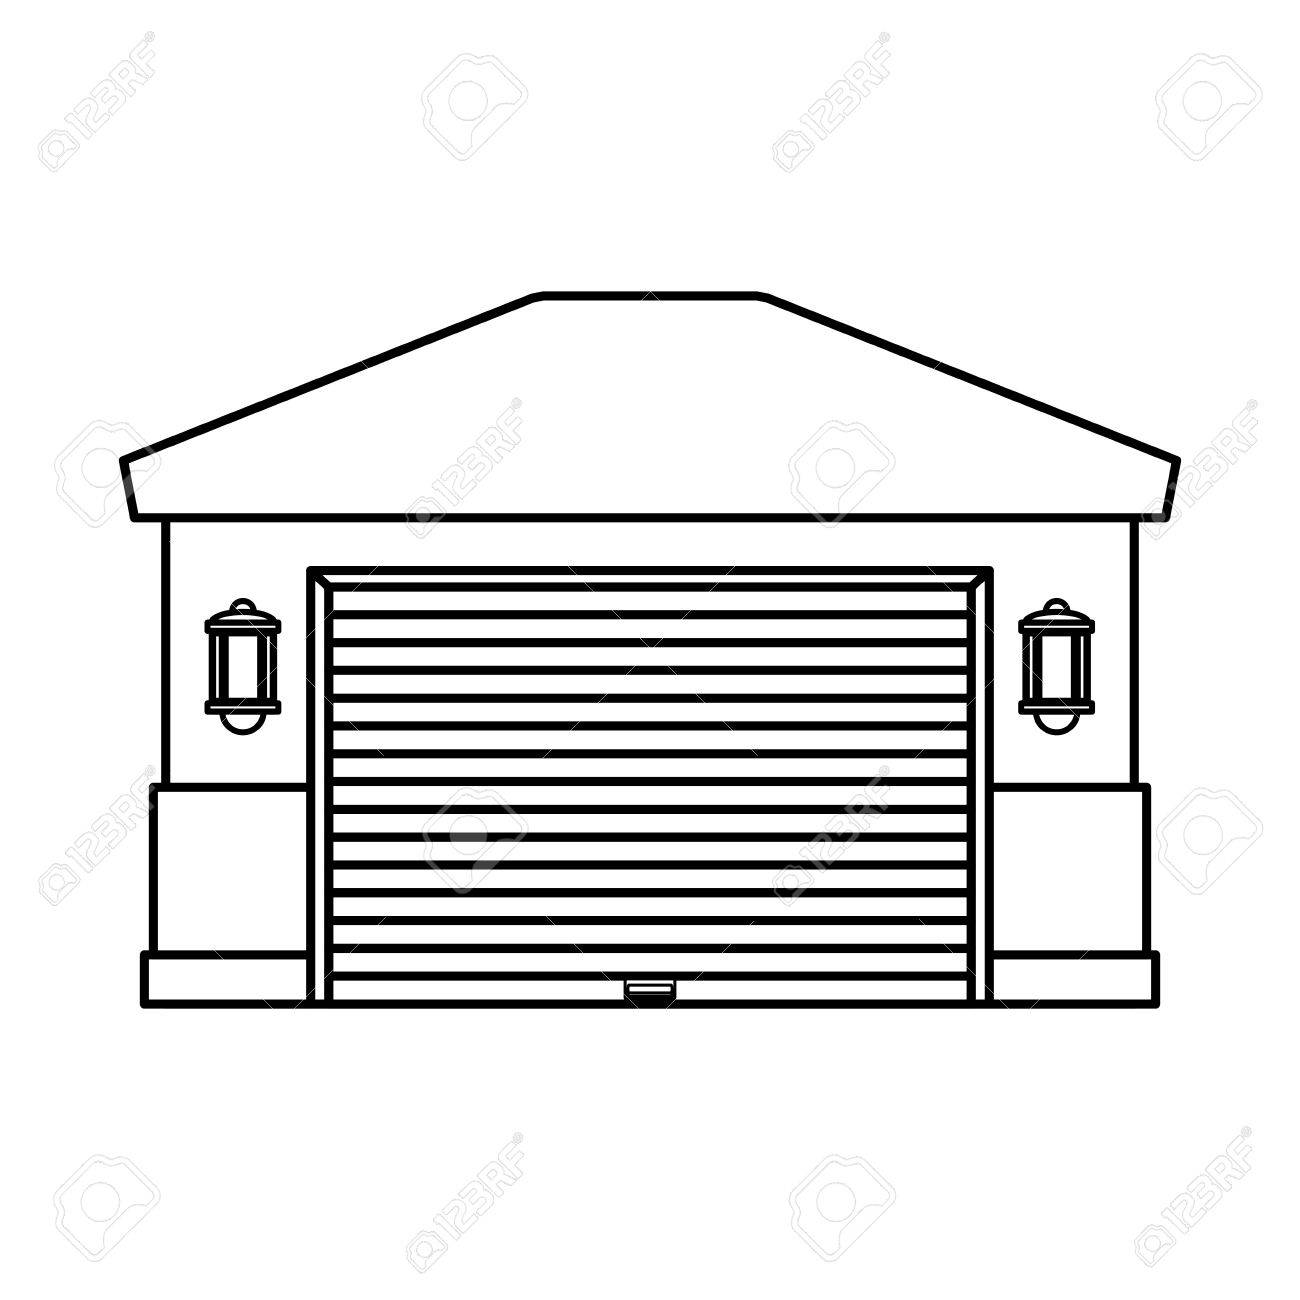 garage door house icon vector illustration graphic design royalty rh 123rf com garage door clipart free garage door clipart